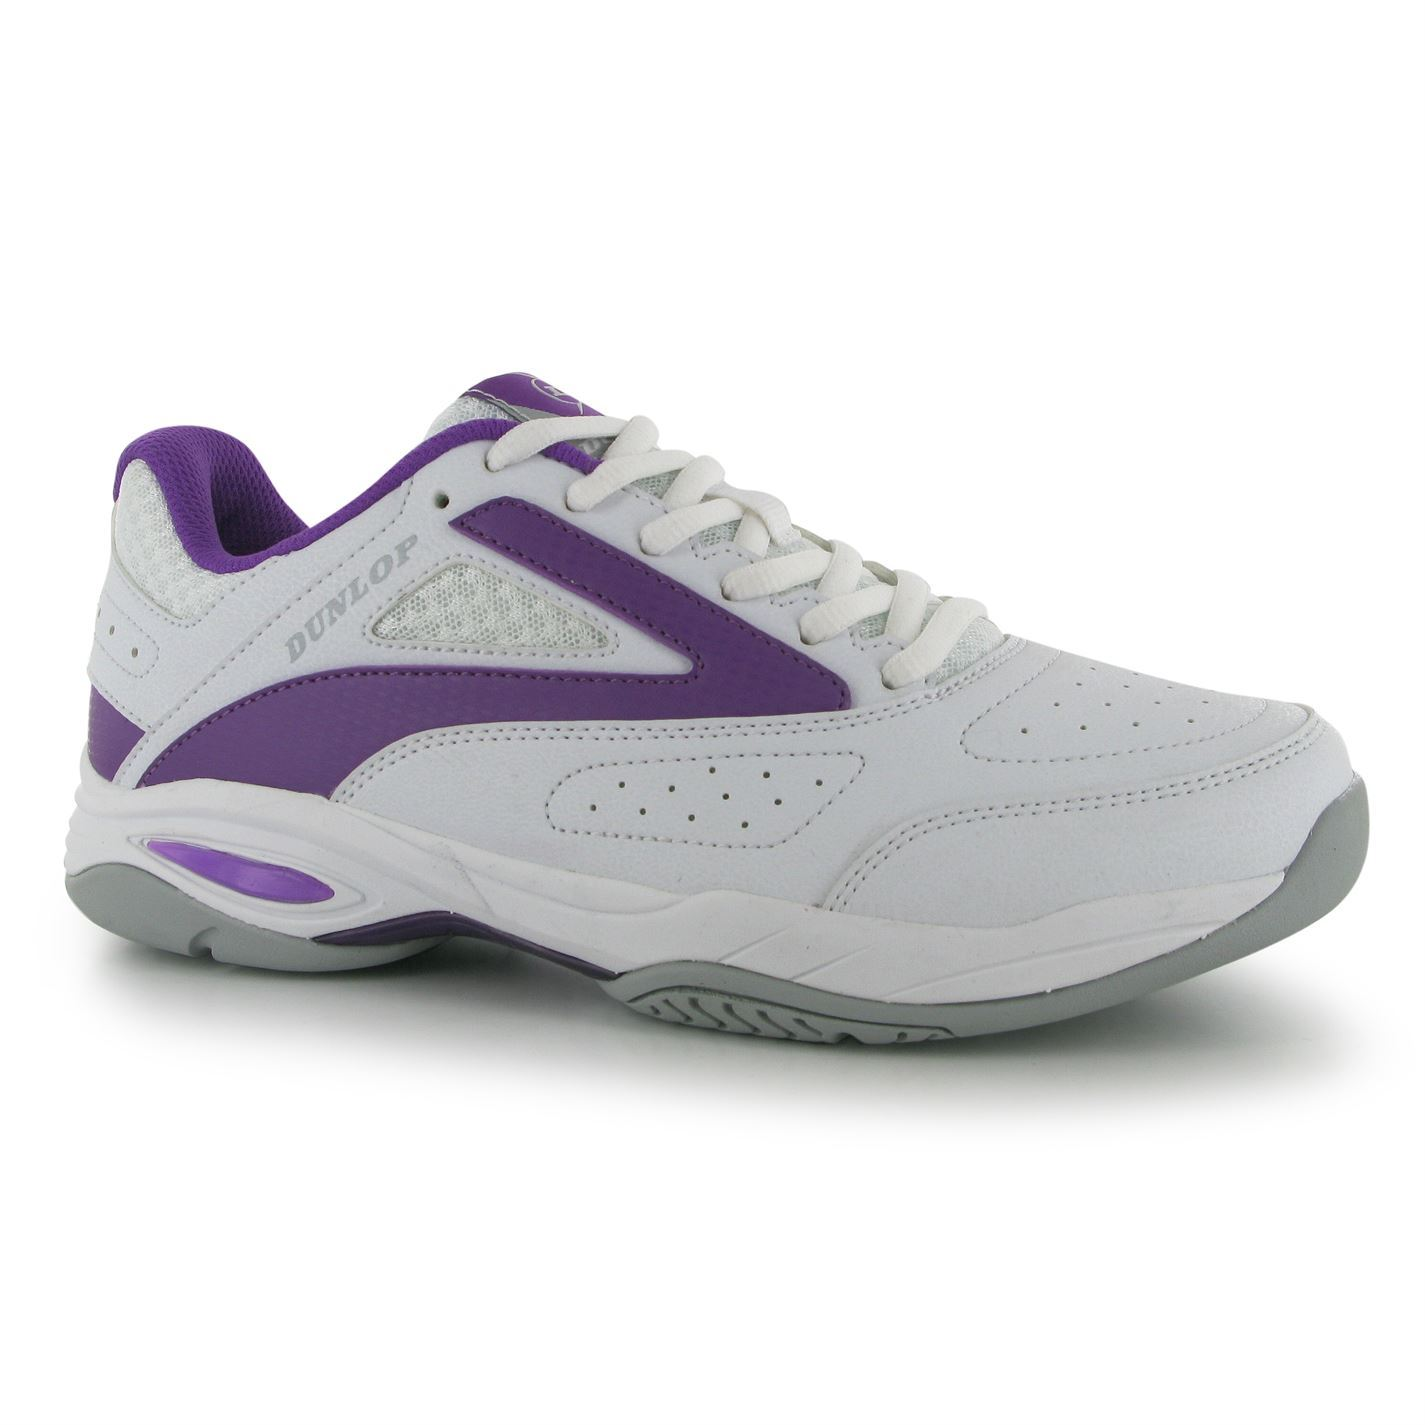 dunlop womens flash classic tennis shoes trainers